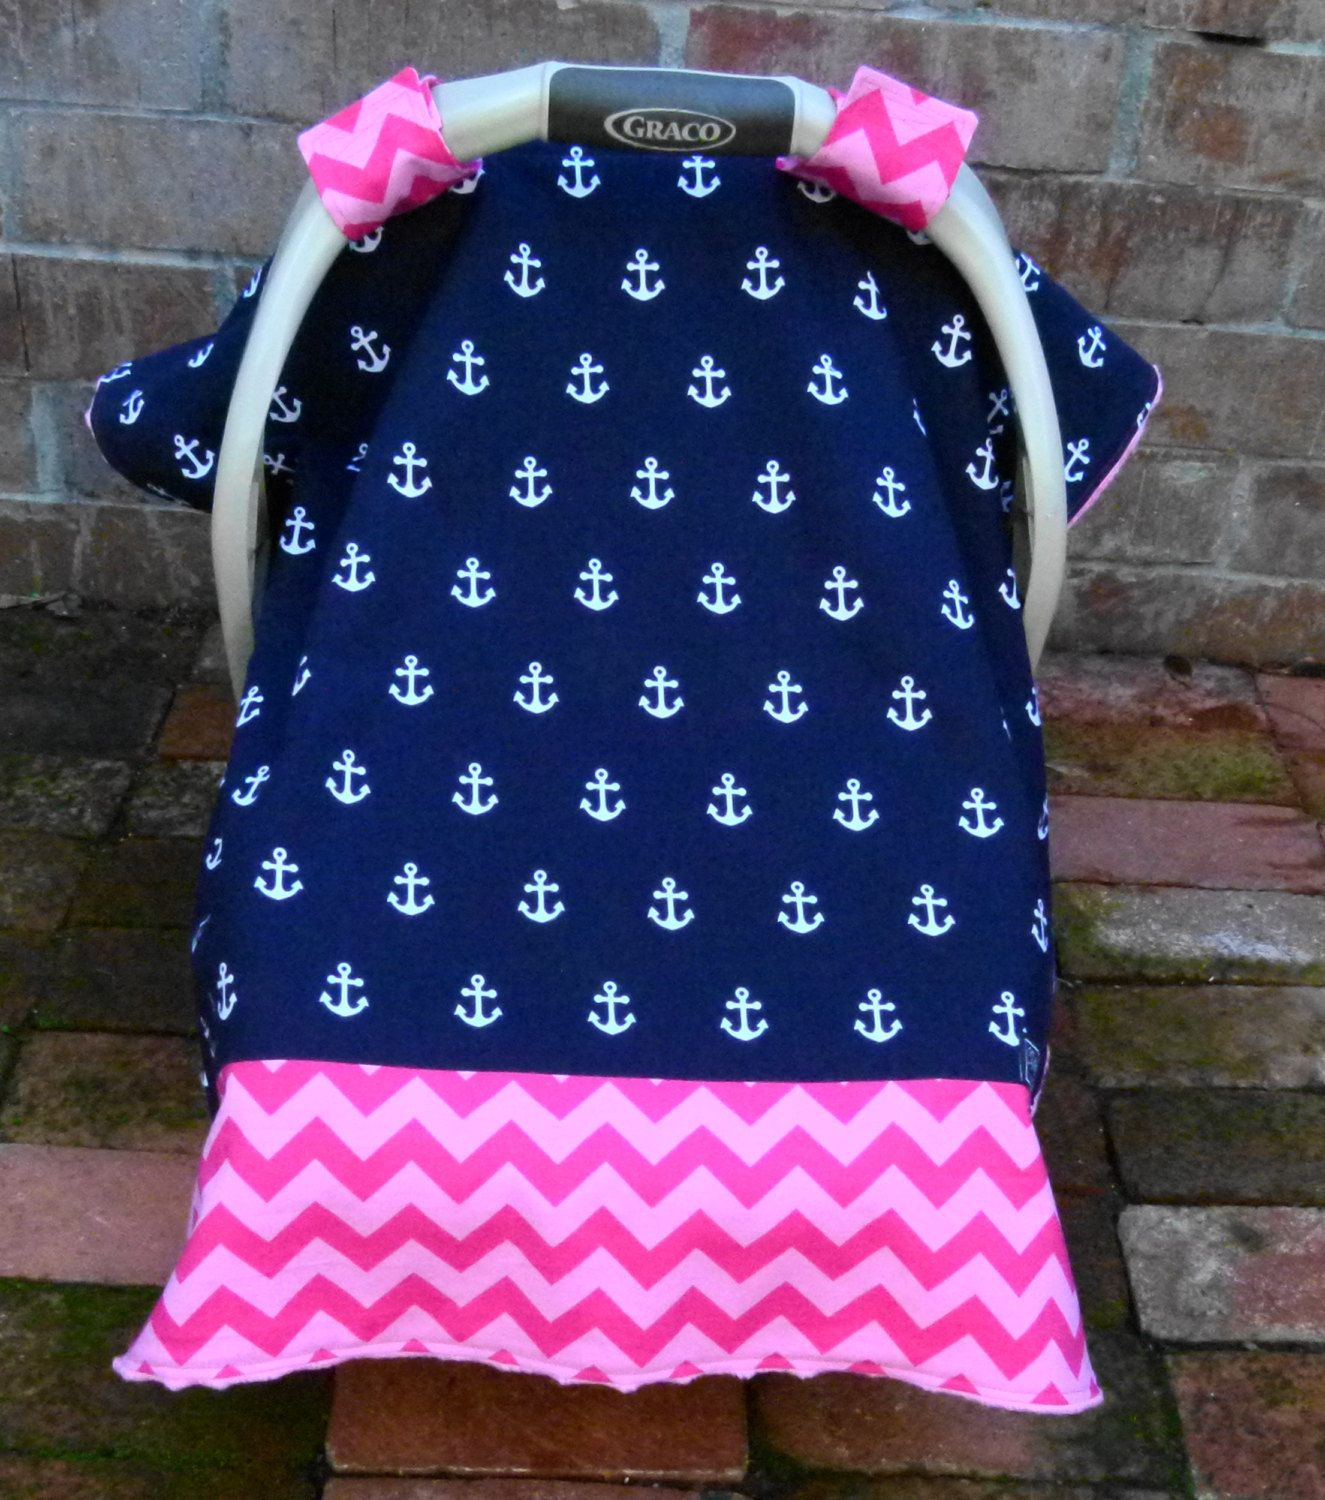 Anchors u0026 Chevron Baby Car Seat Canopy Cover in Navy and Pink; Nautical Car Seat Cover; Red Minky Dimple Dot; Car Seat Tent Cover; Blanket & Anchors u0026 Chevron Baby Car Seat Canopy Cover in Navy and Pink ...